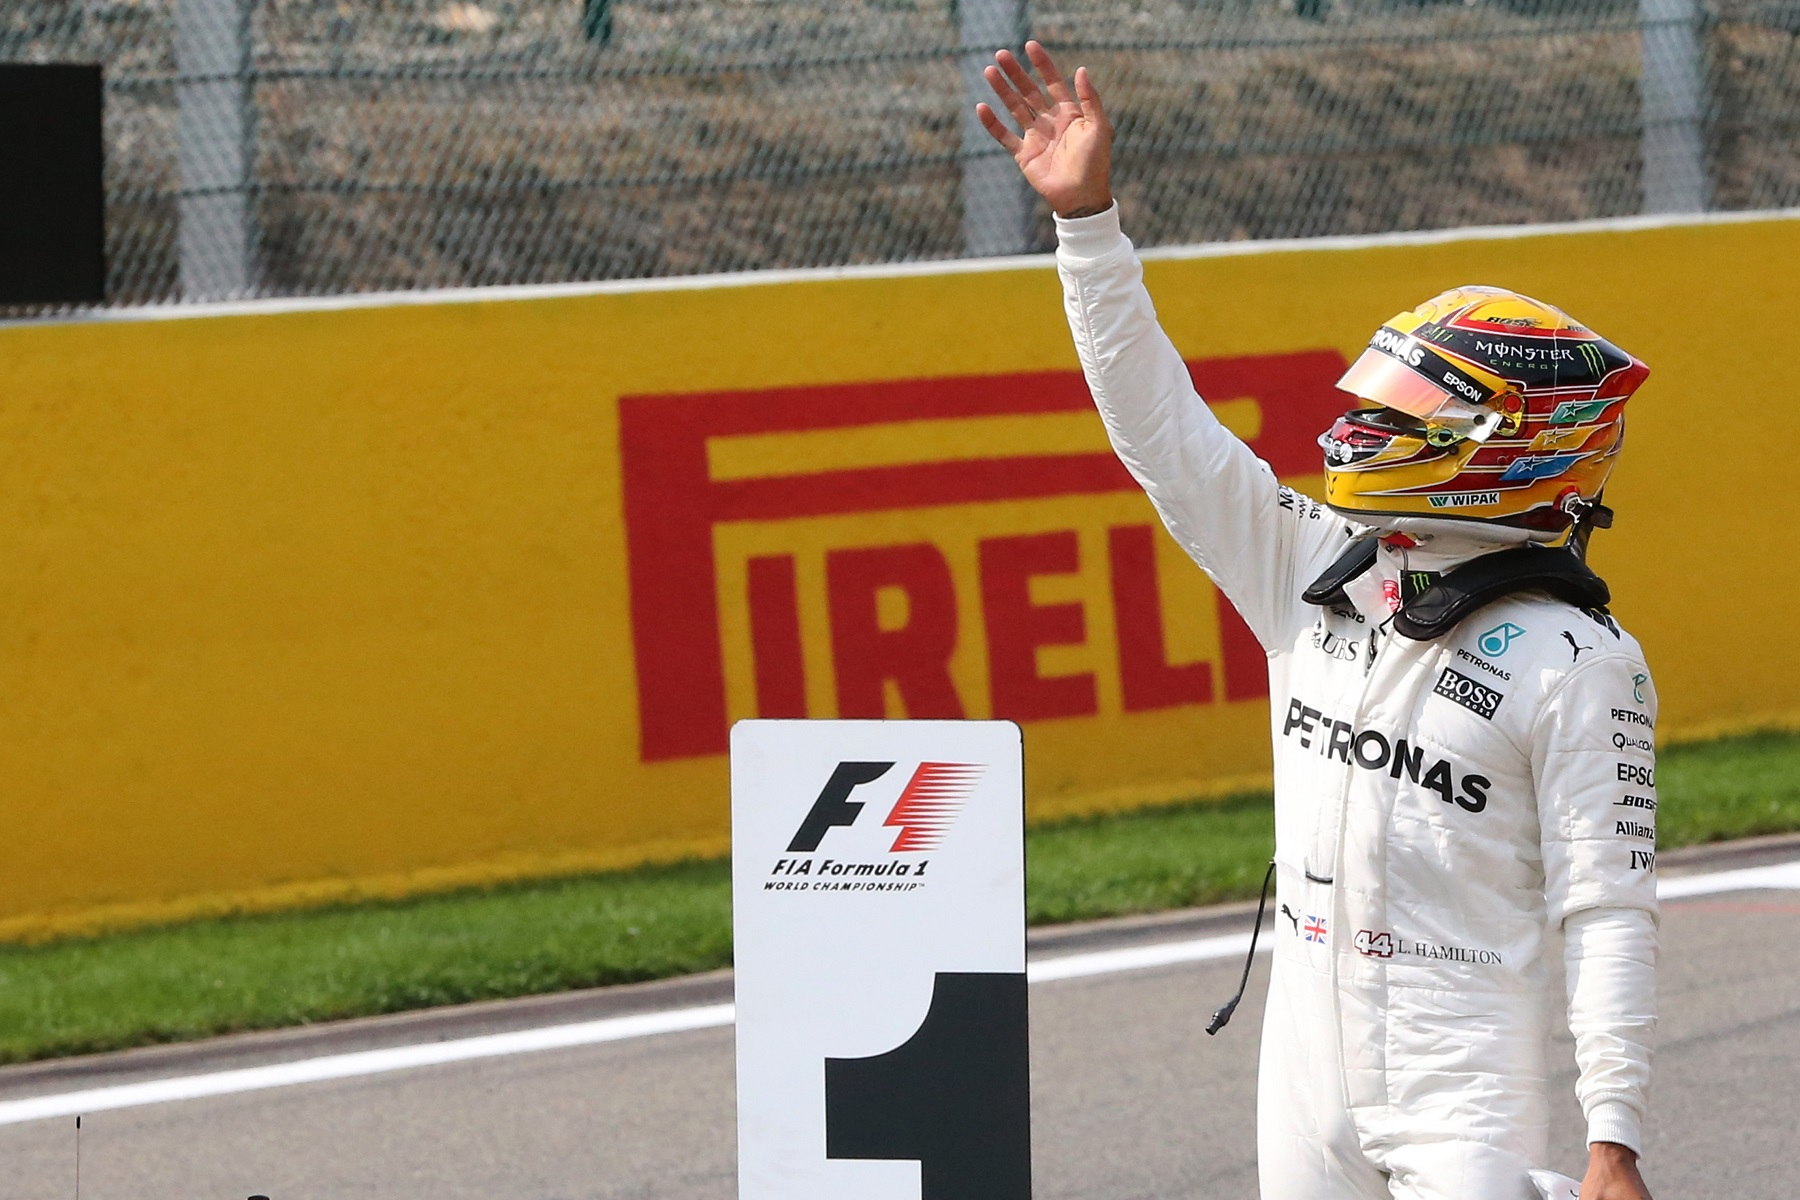 Lewis Hamilton waves from the front straight at Circuit de Spa-Francorchamps